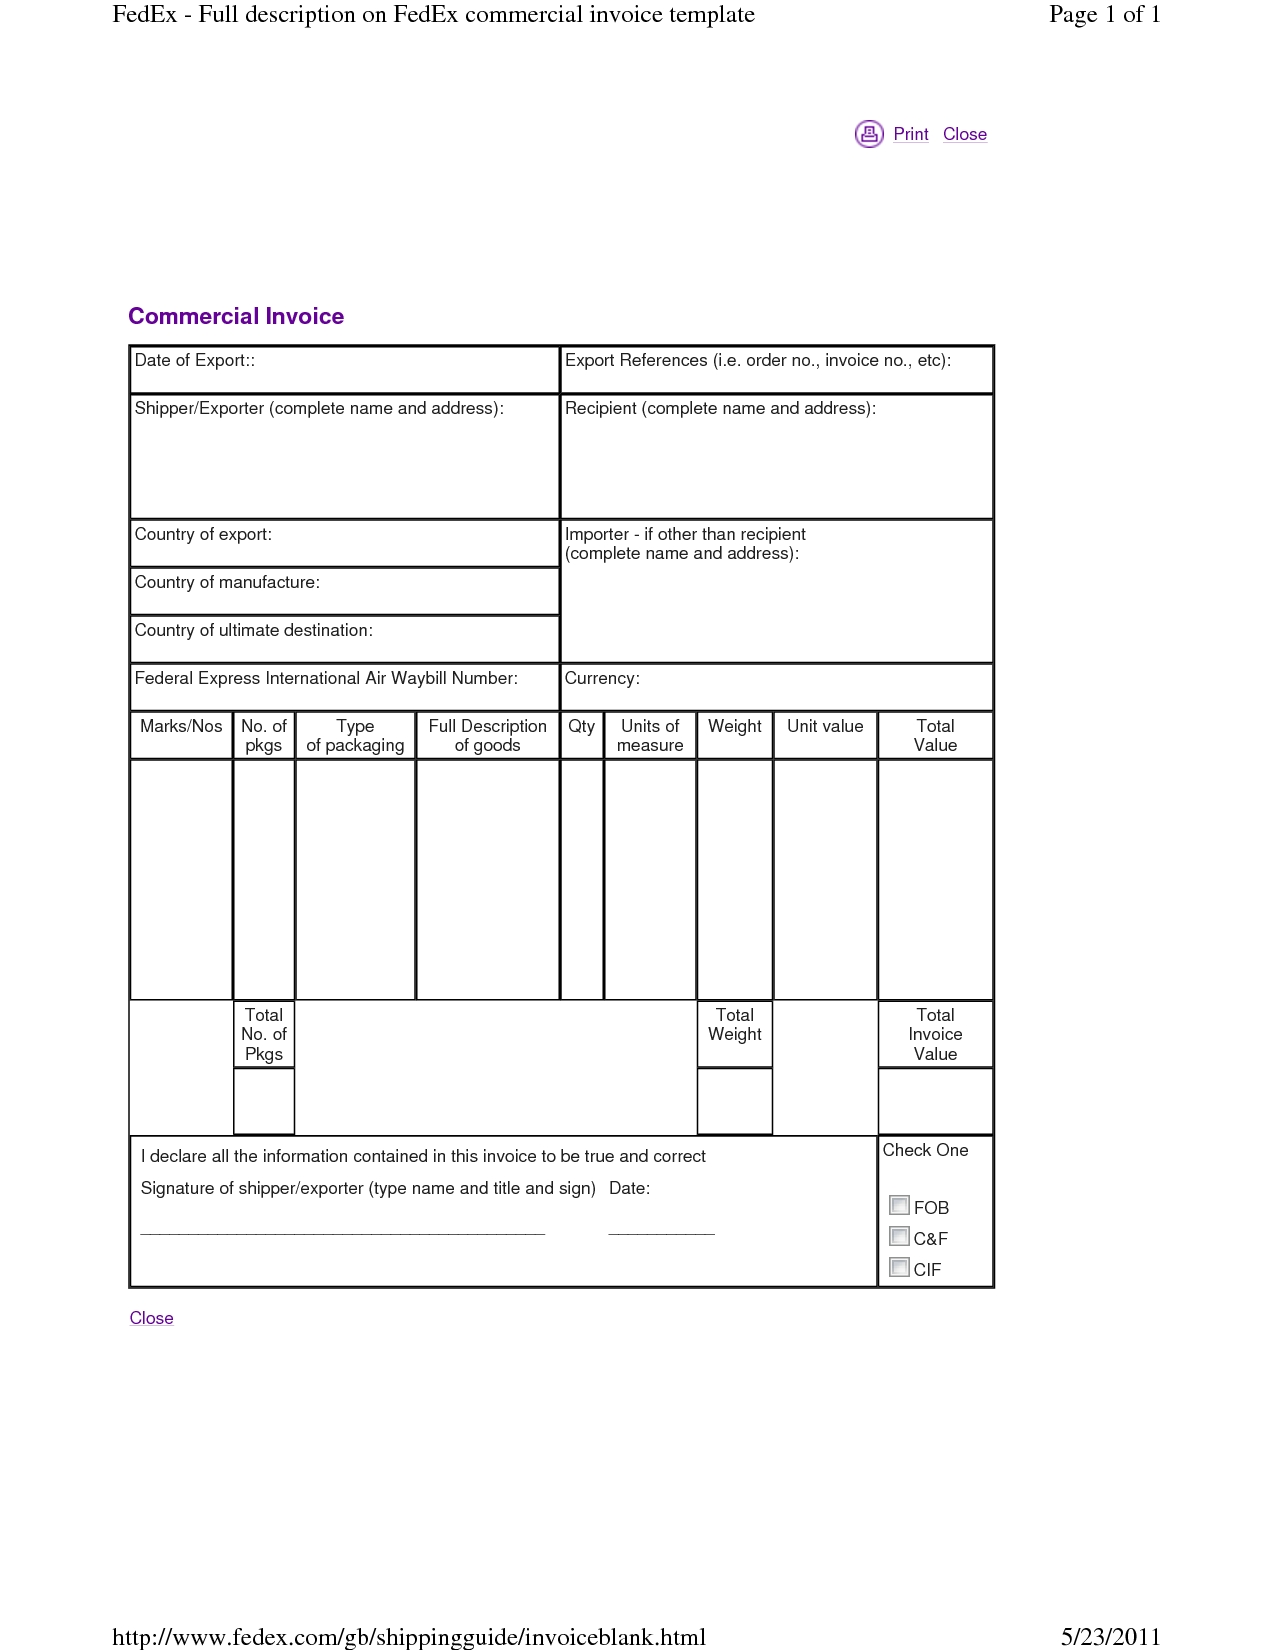 fedex customs invoice fedex invoice invoic fedex commercial fedex proforma invoice